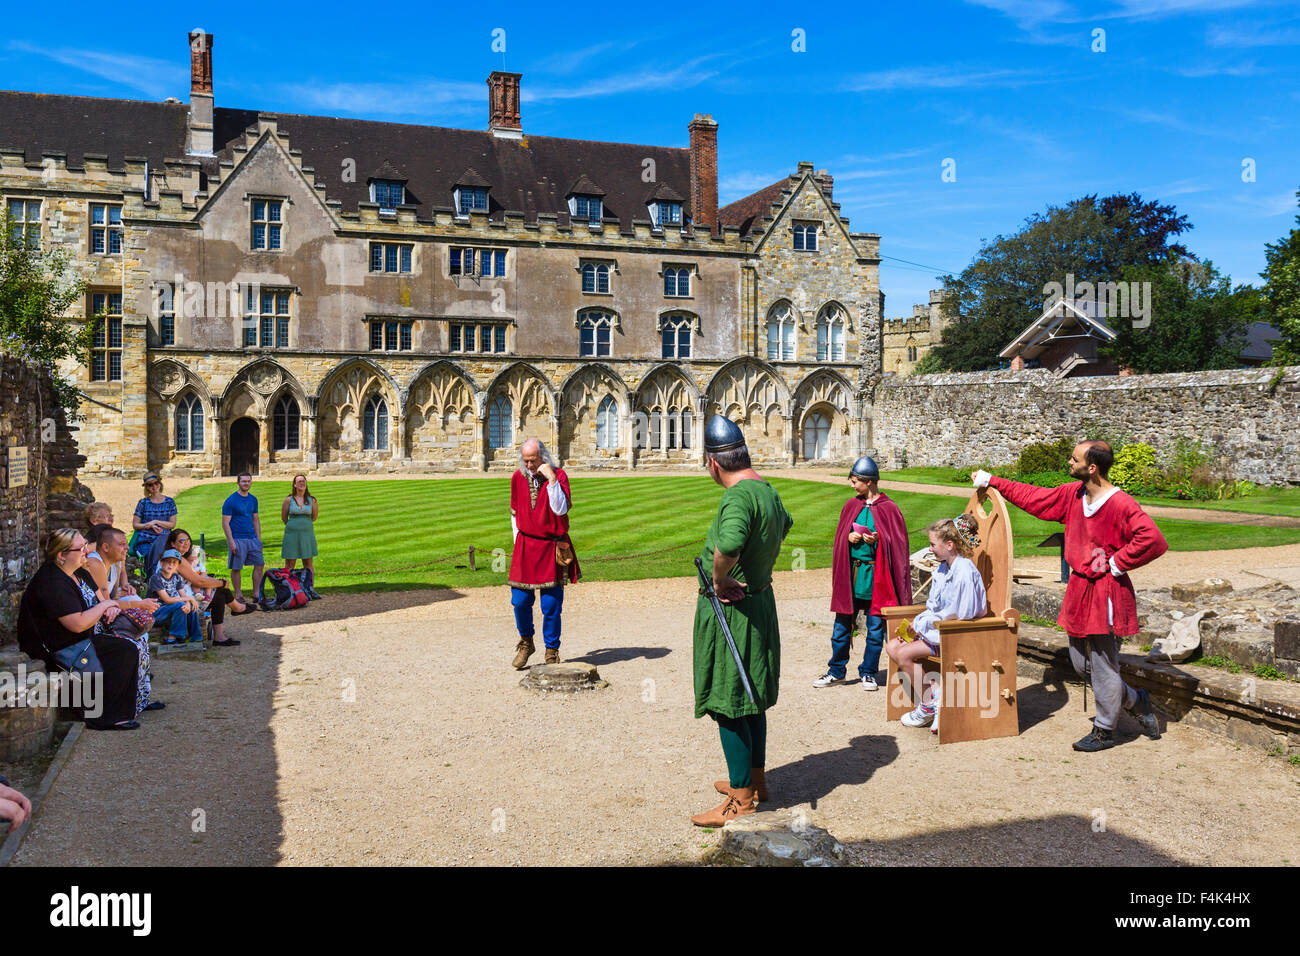 Visitors participatiing in historical re-enactment in front of Abbot's Great Hall (now a school) at Battle Abbey, - Stock Image